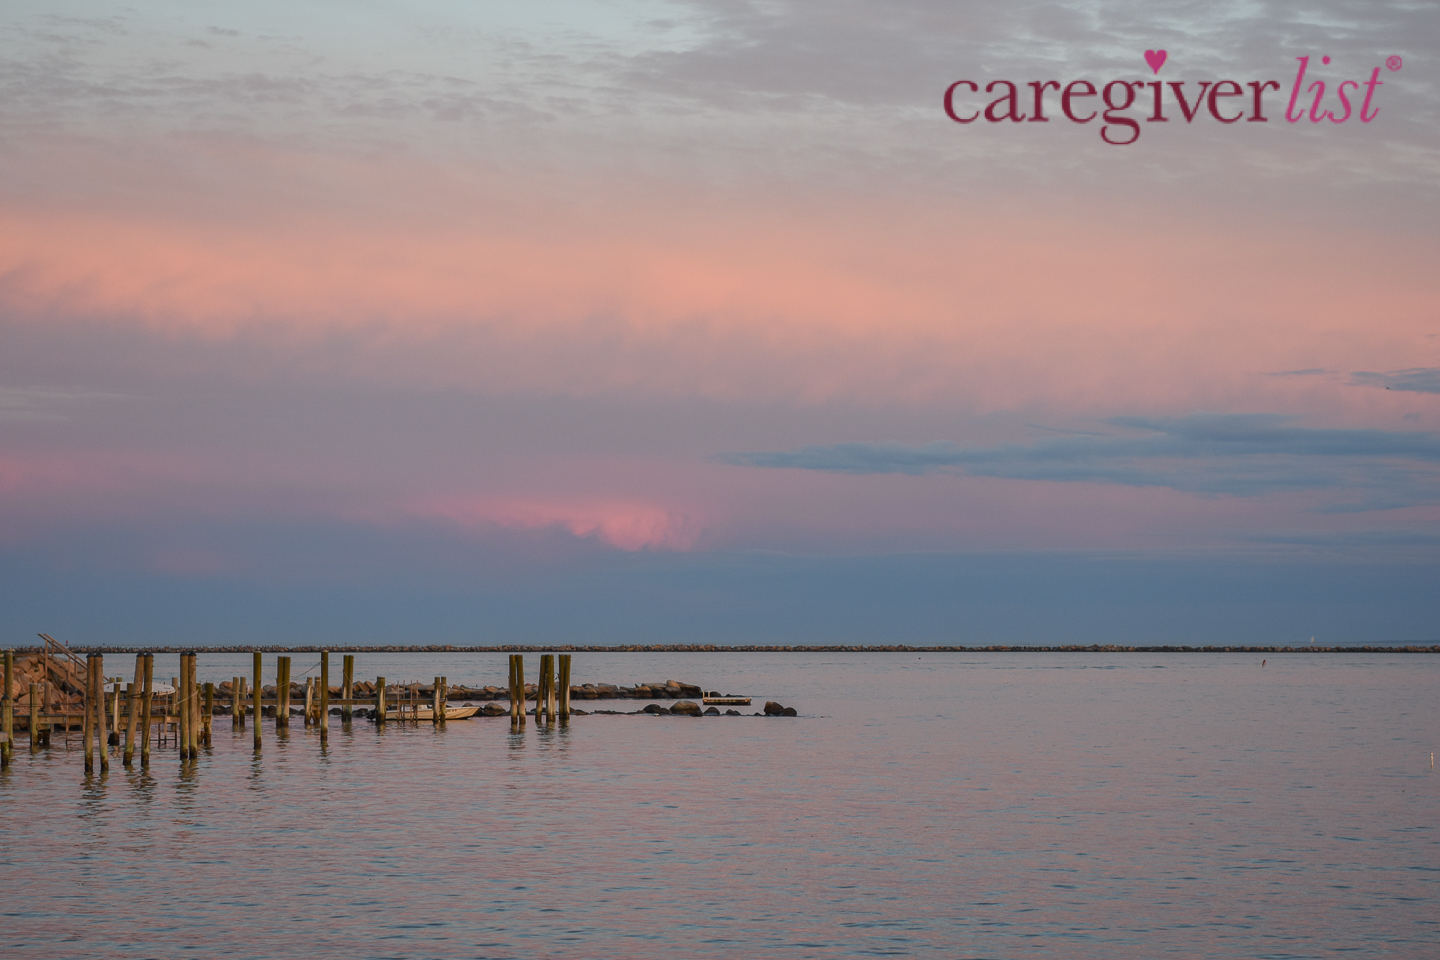 Evening Blush for Caregiver Stress Relief